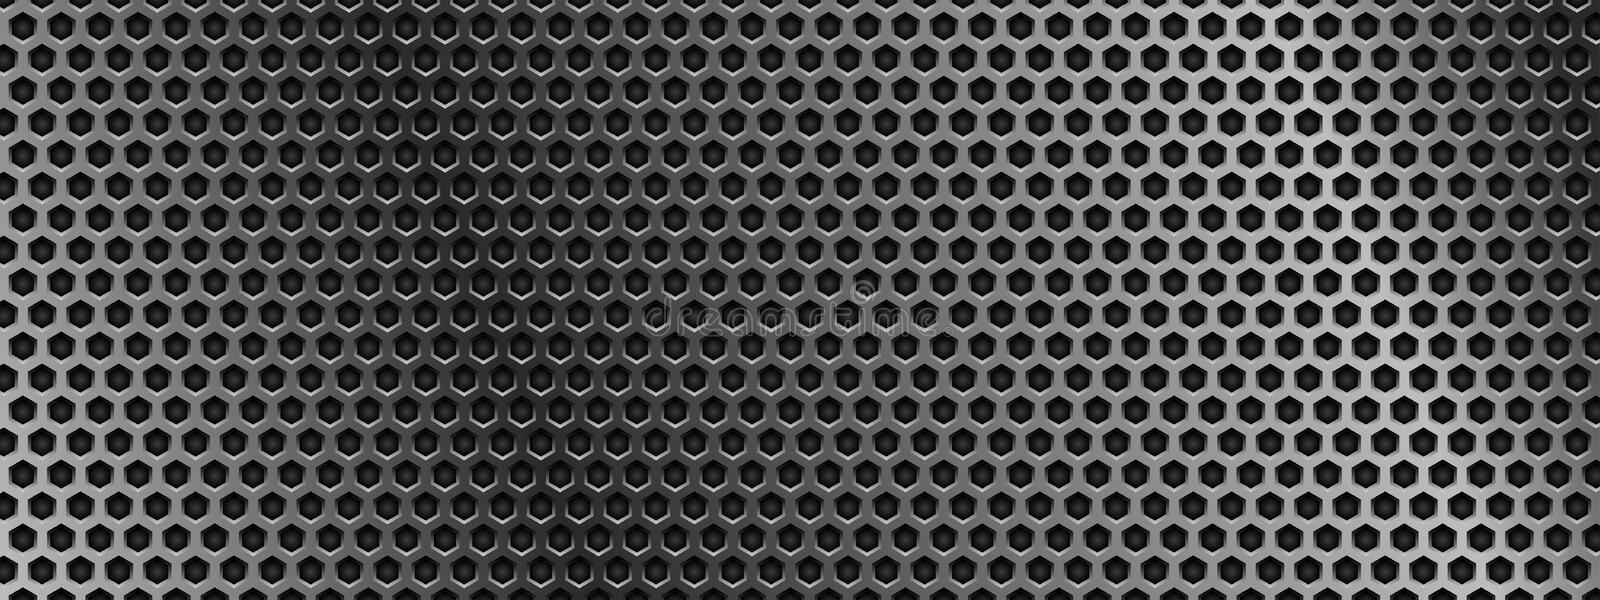 Metal perforated 3d texture. Vector illustration stock illustration